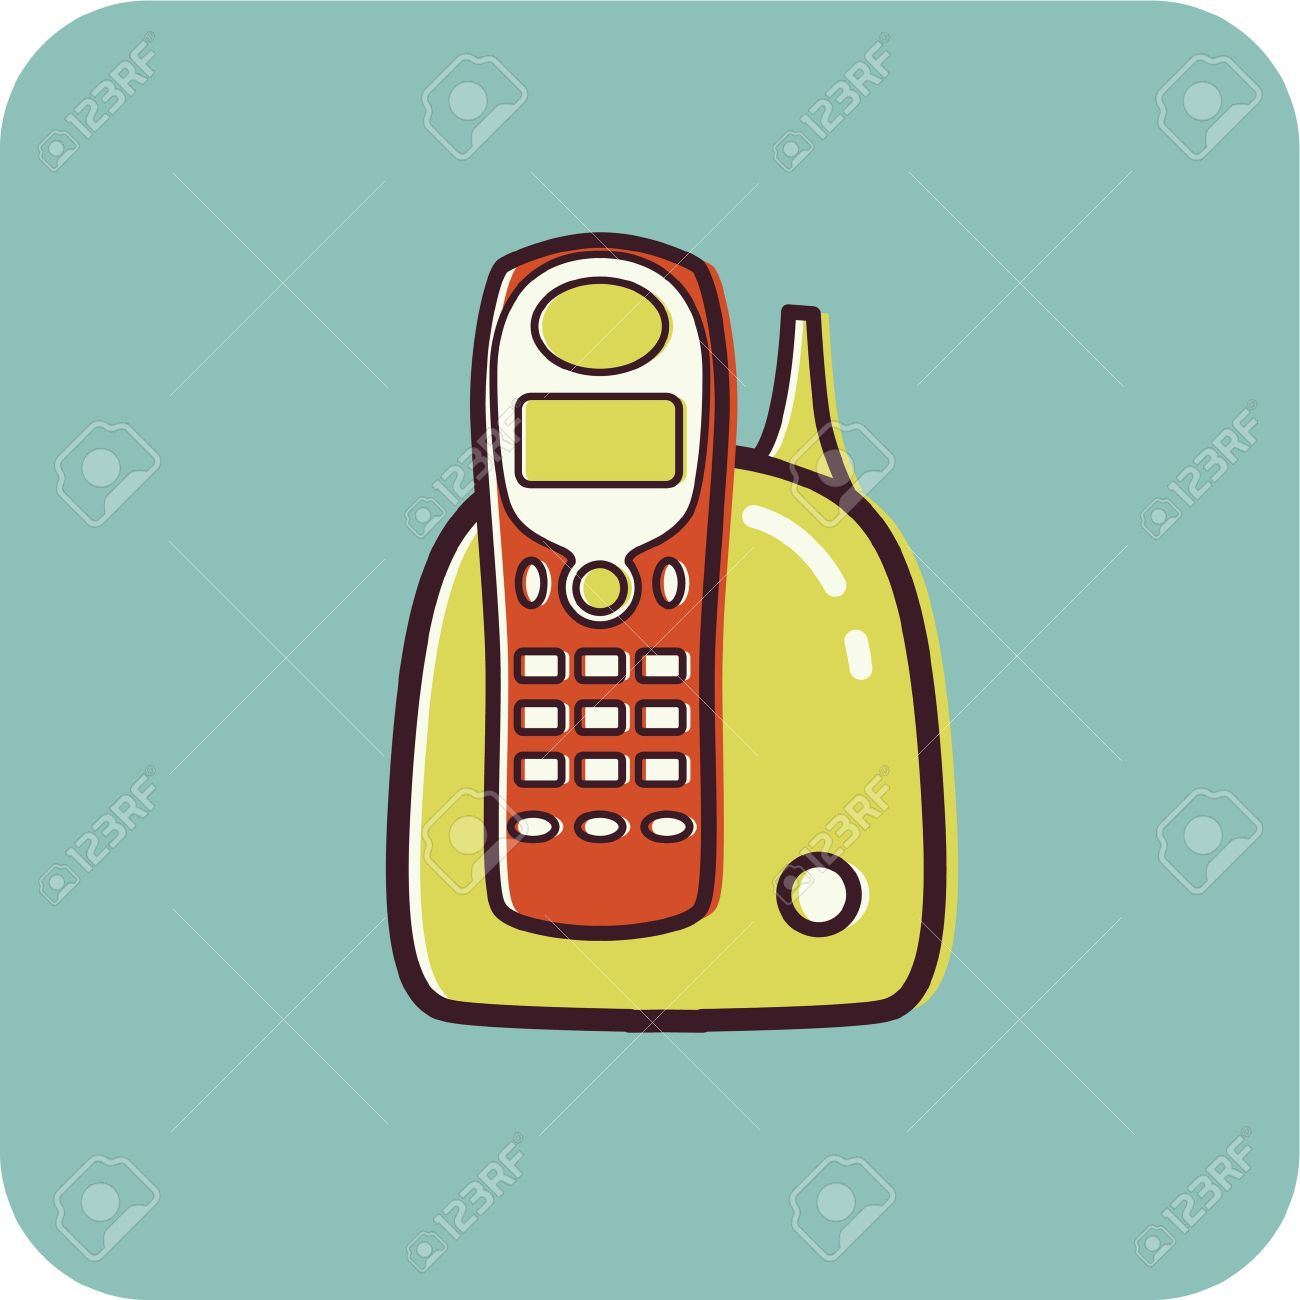 Illustration of a cordless phone on a blue background Stock Illustration - 14865008